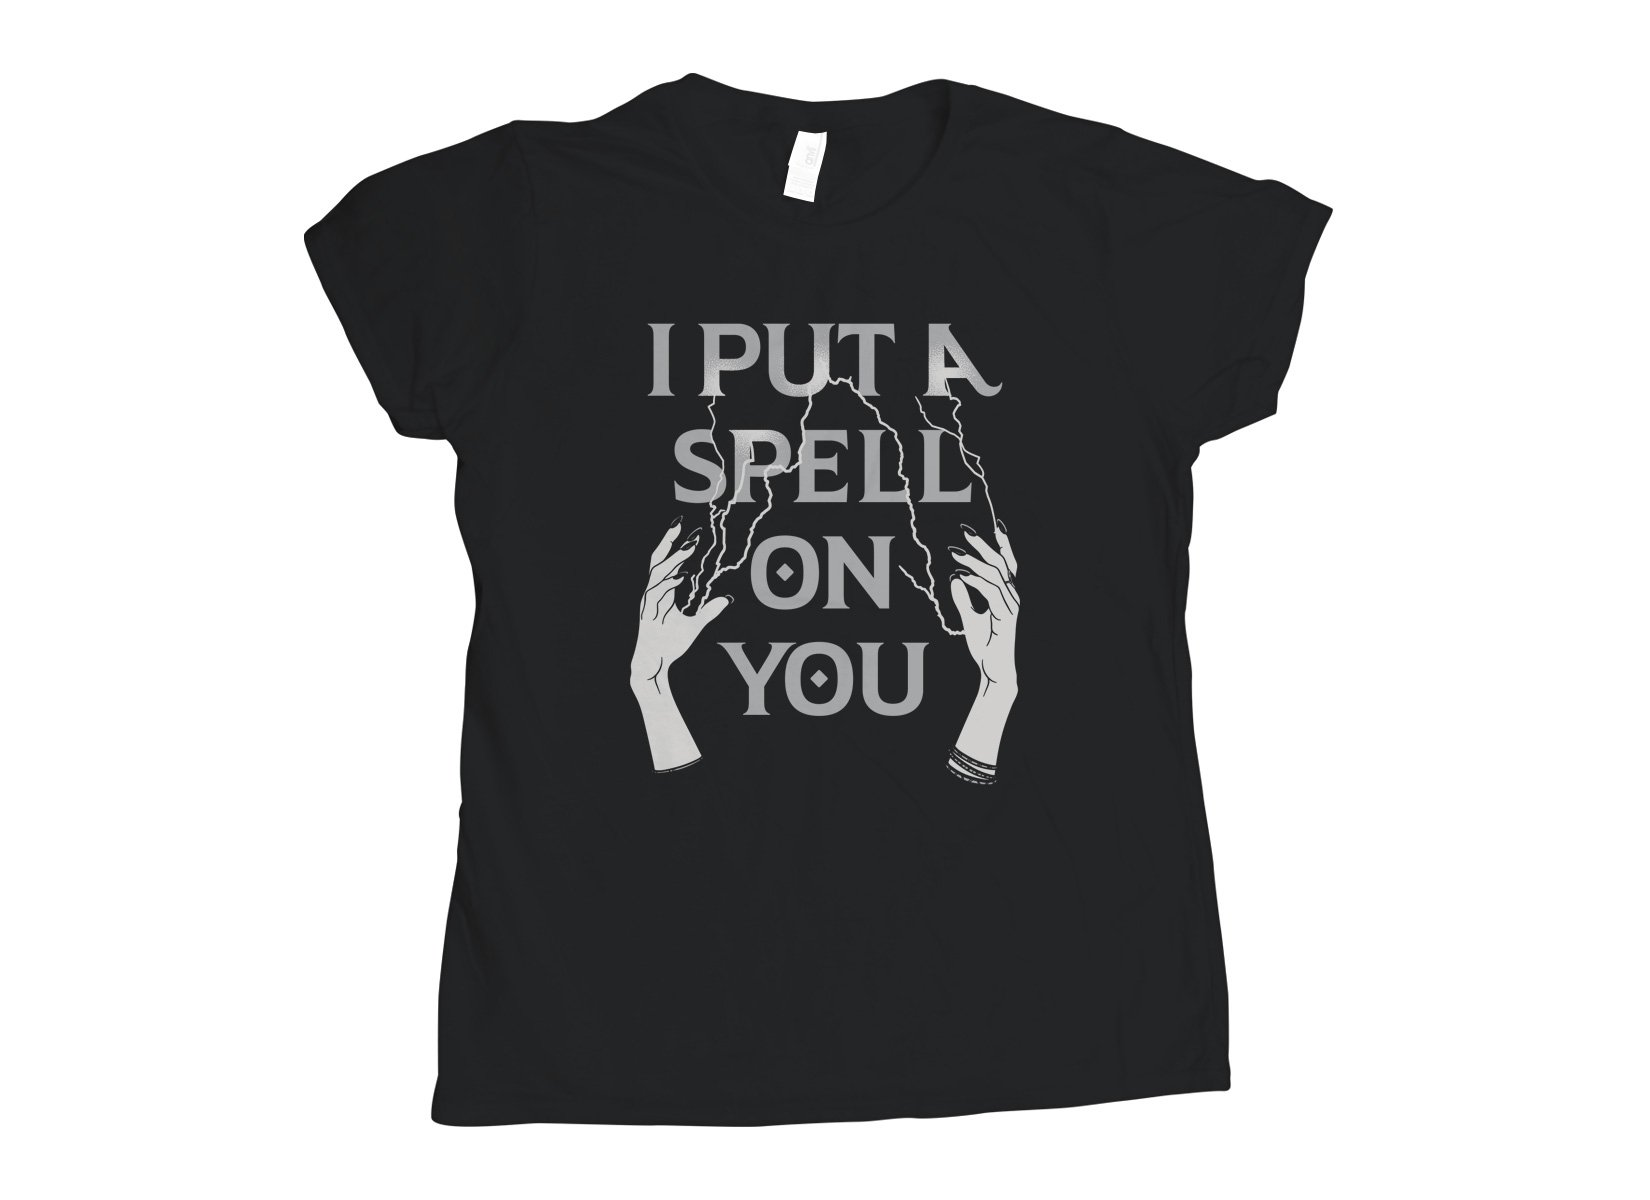 I Put A Spell On You on Womens T-Shirt